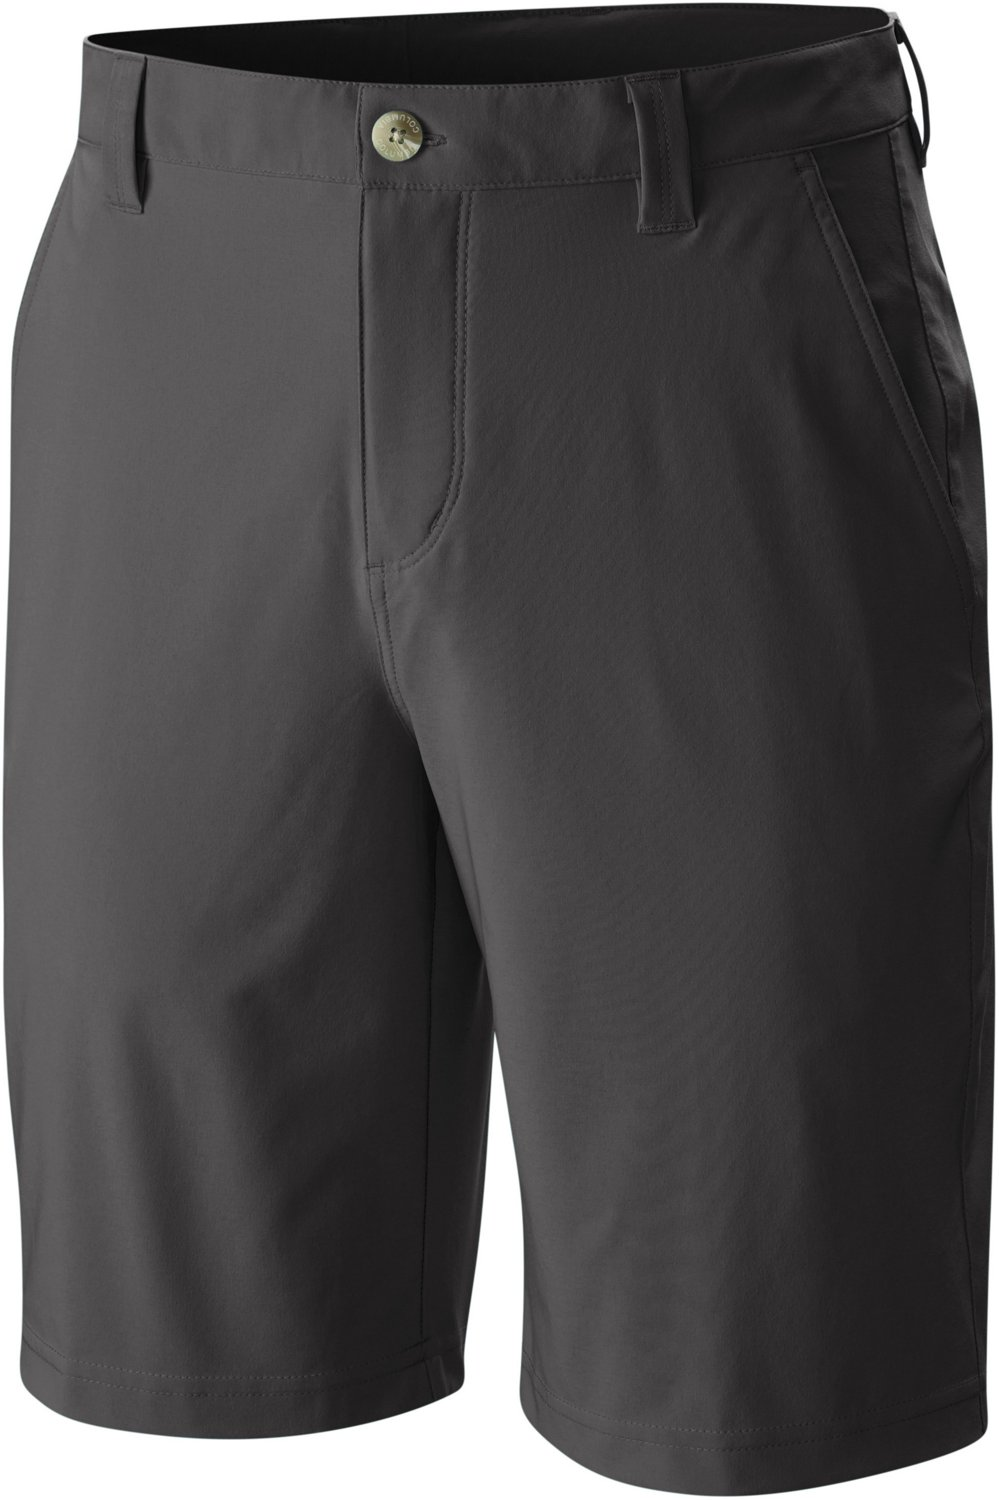 caddaaa395 Display product reviews for Columbia Sportswear Men's Grander Marlin II  Offshore Short